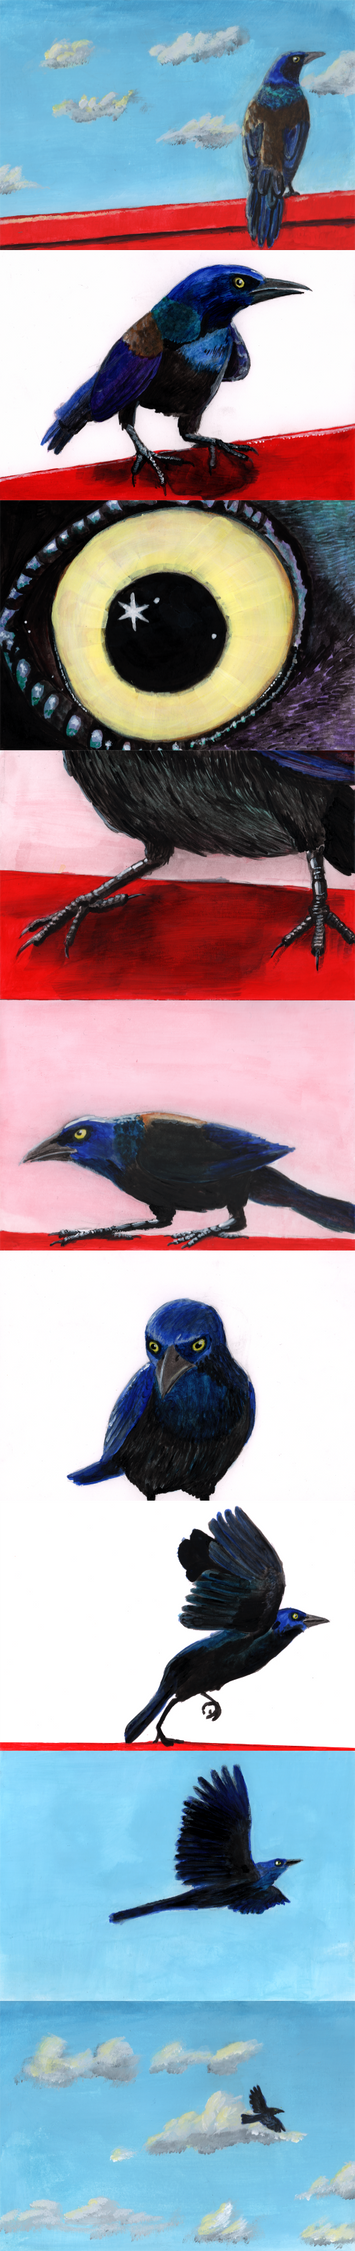 Illustrations for A Grackle on a Porch Guardrail by sirustalcelion